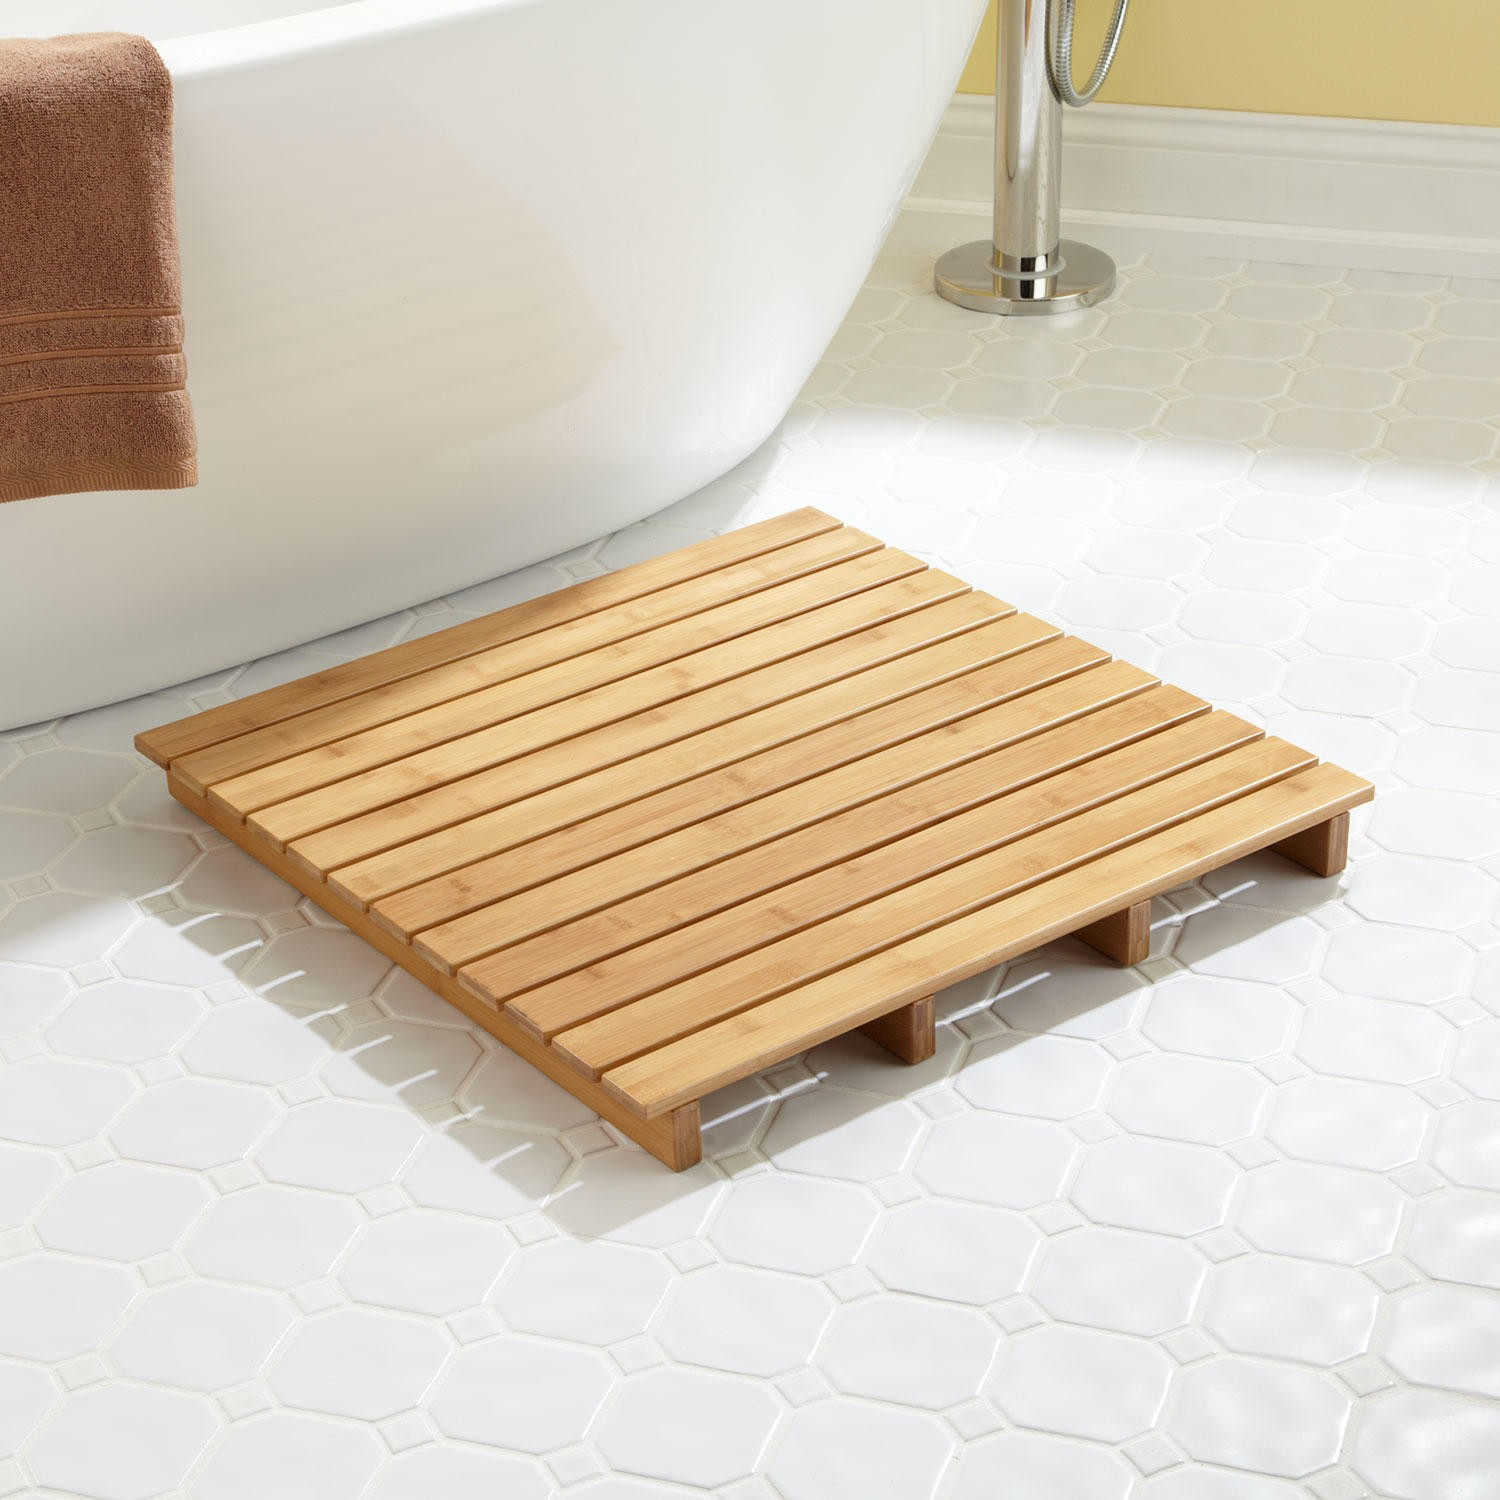 Small teak bath mat